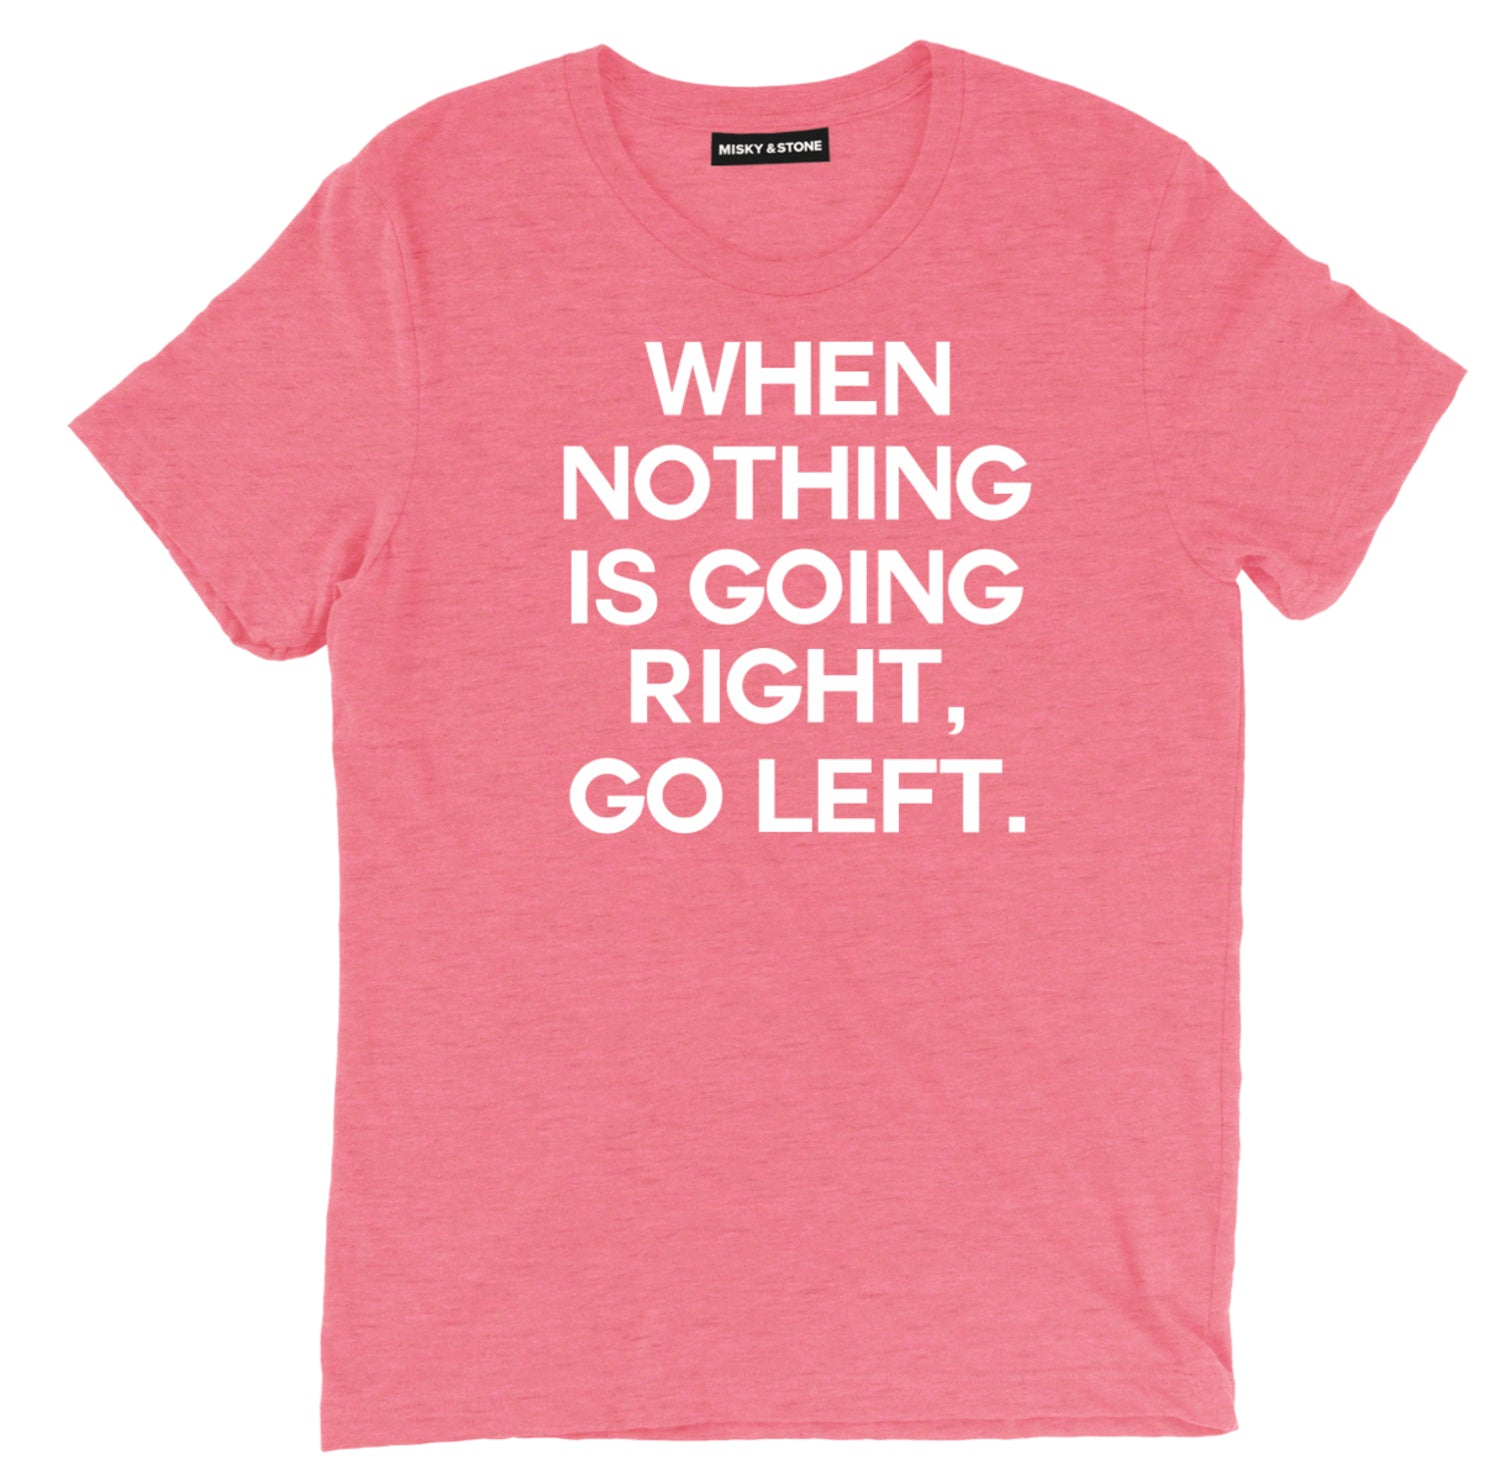 when nothing is going right go left sarcastic t shirts, go left sarcastic shirts, funny go left sarcastic tee shirts, nothing going right sarcastic tees, sarcastic t shirt sayings, sarcastic t shirts quotes, funny sarcastic t shirts,